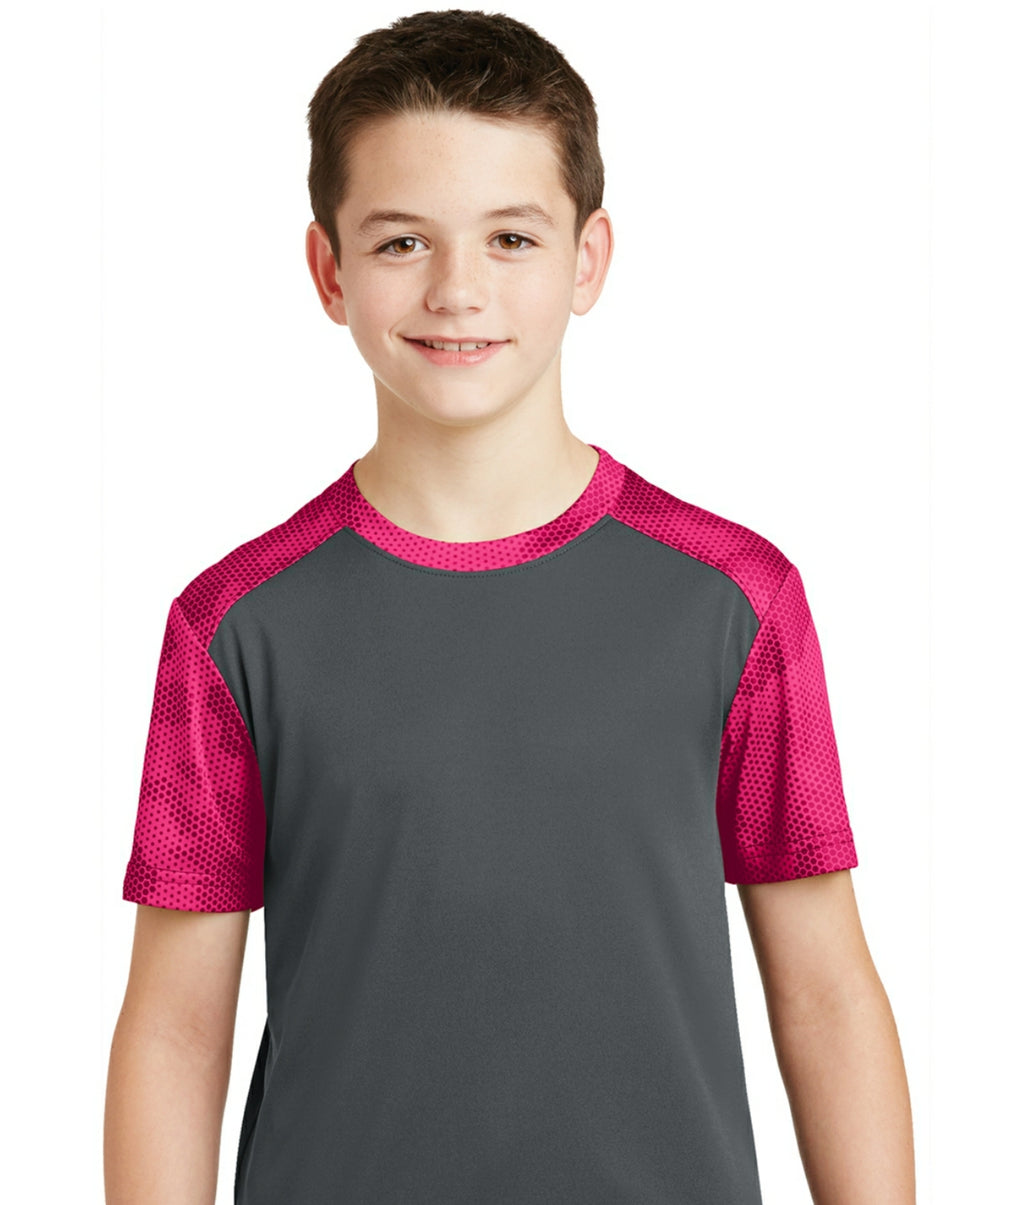 attached front panel camohex colorblock children's tee Gray/Pink Raspberry